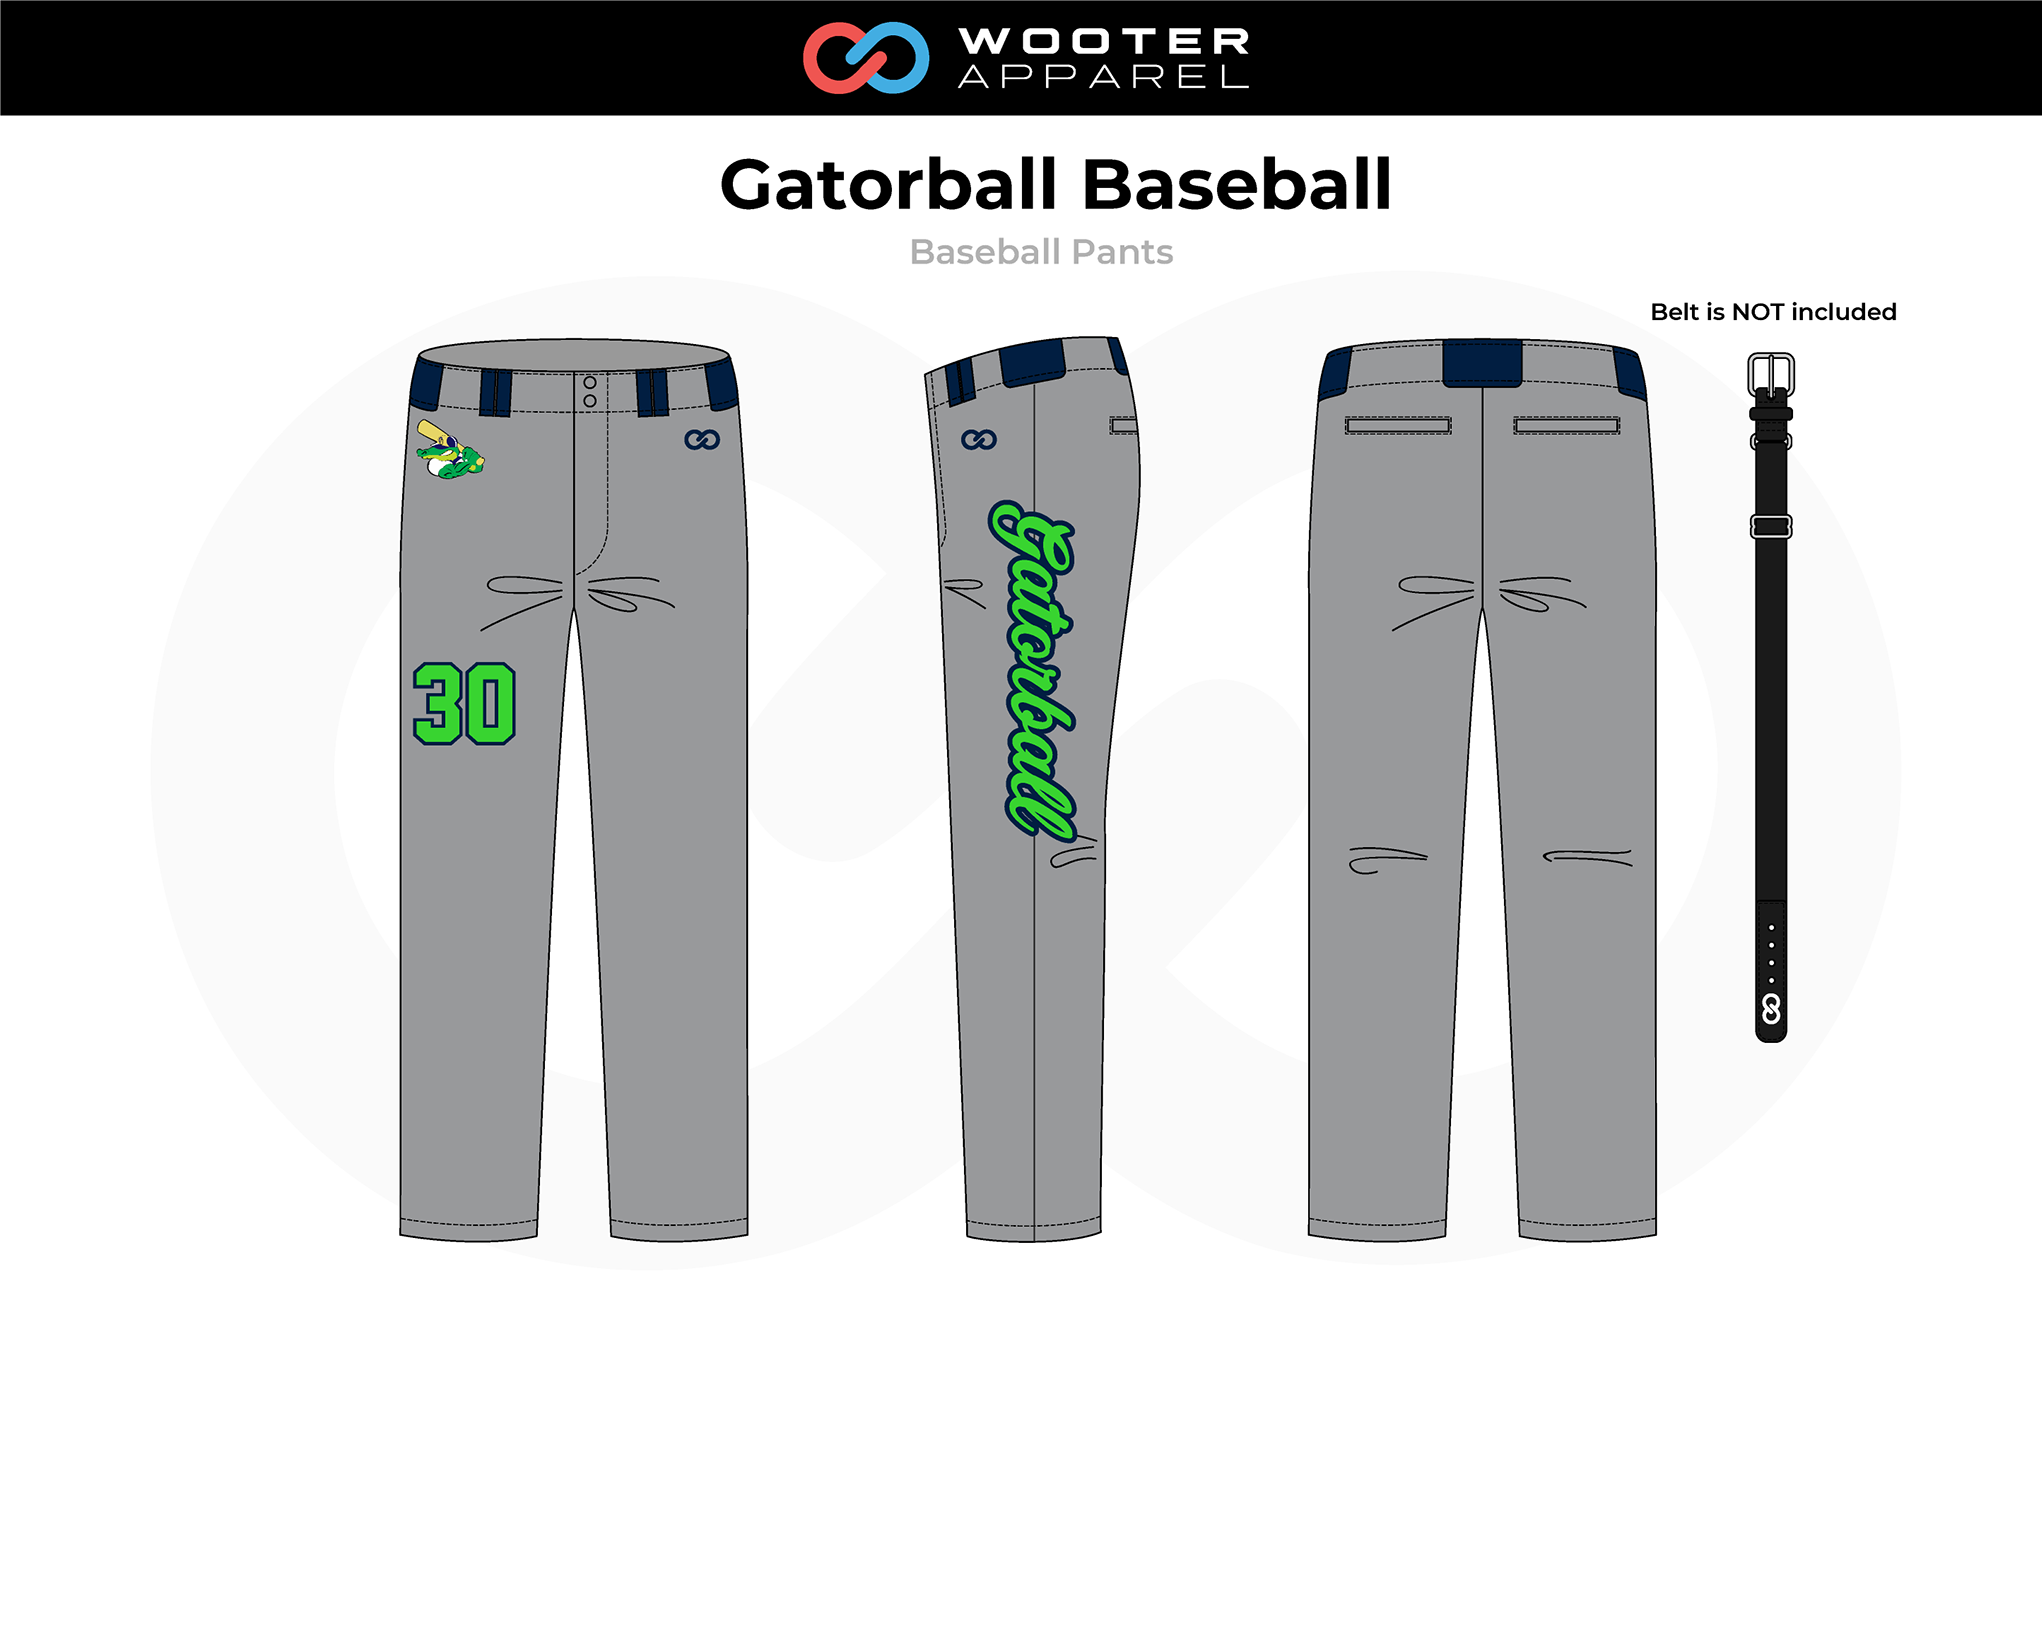 2019-02-04 Gatorball Baseball Pants (Force).png